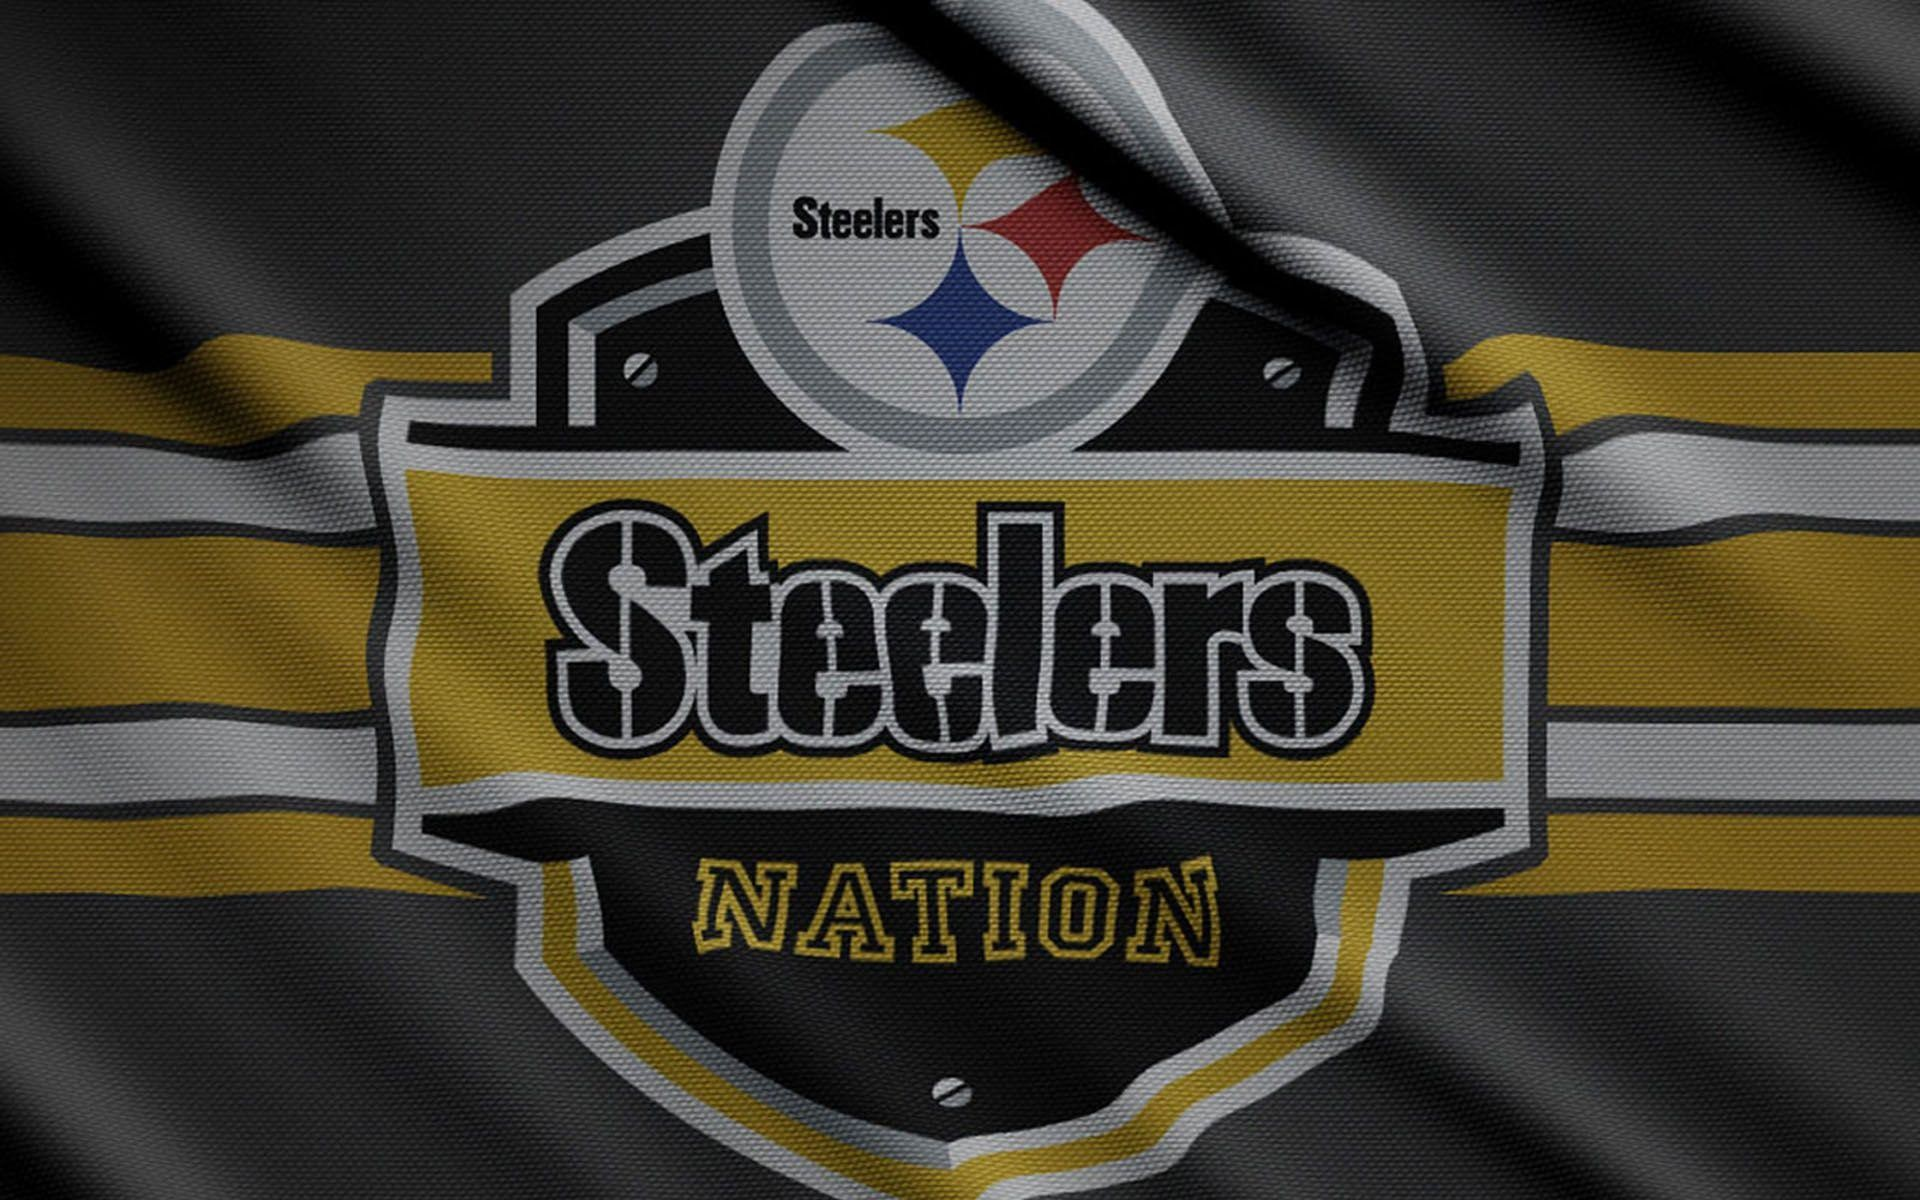 Sports Pittsburgh Steelers Wallpapers In HD, HQ Backgrounds | HD .